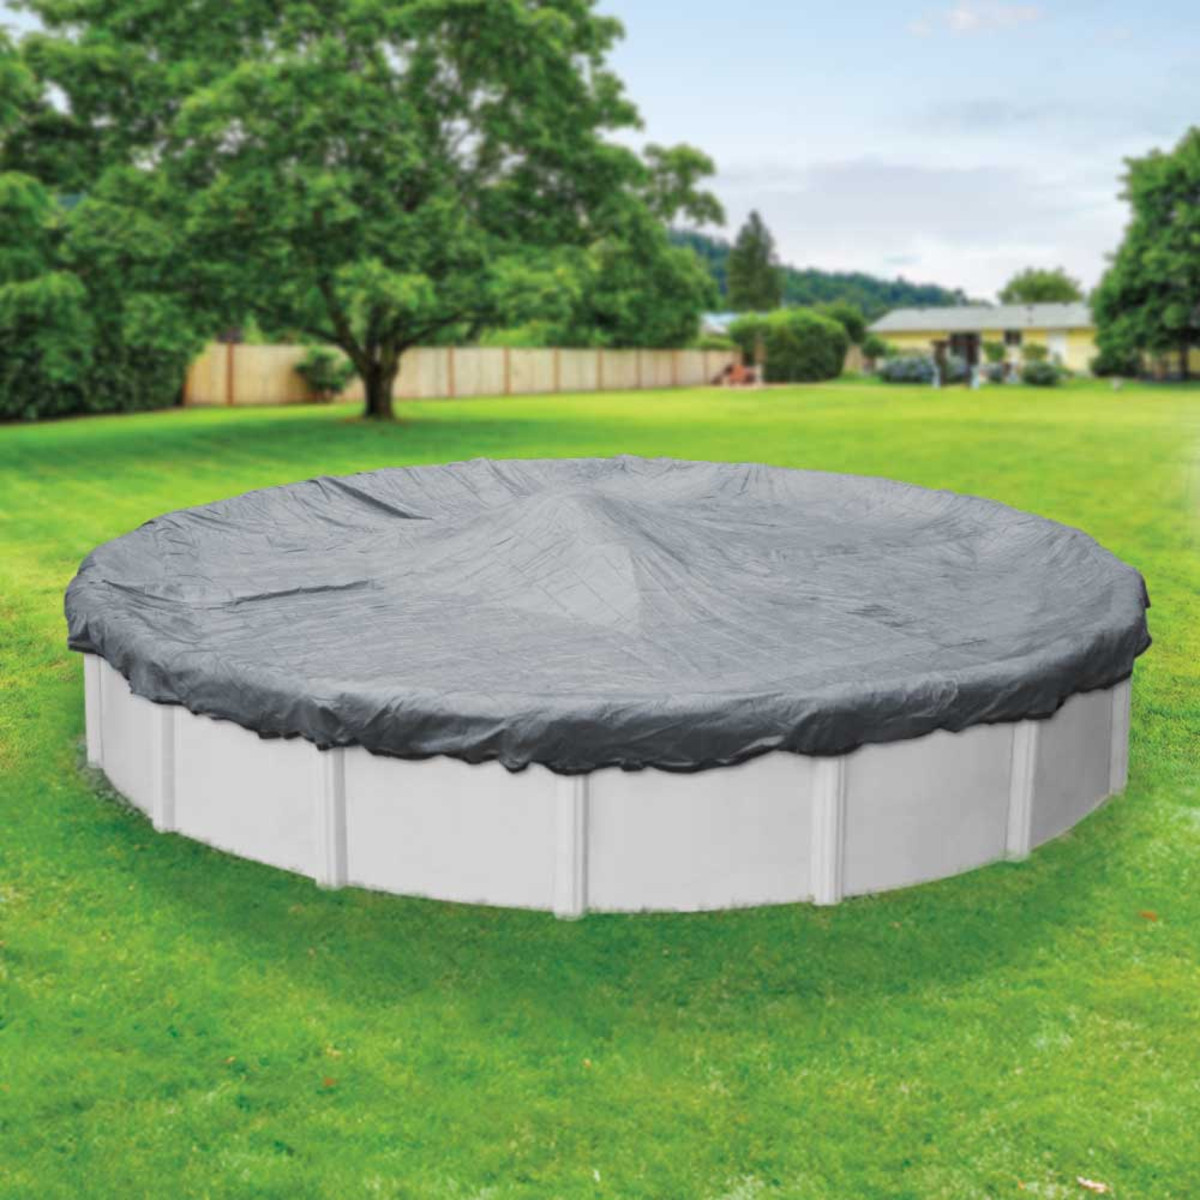 Robelle mesh 24 39 round winter pool cover gray black above ground pool covers splash super for Swimming pool winter cover clips